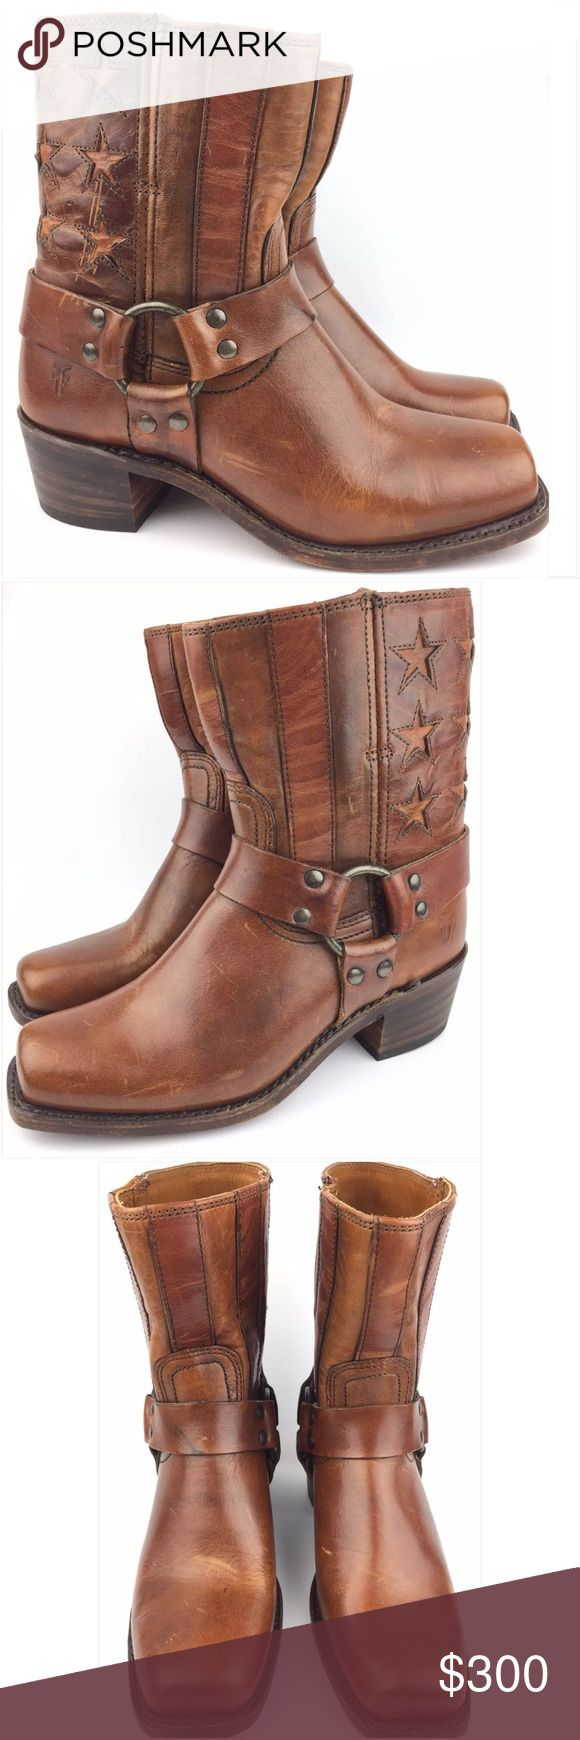 "Frye Harness Americana Tan Short Ankle Boots New with defects | Boots have marks and scratches due to storage | Actual Pictures | Original box not included | 100% Authentic  | 150th Anniversary | Size: US 6 Women's  Approx. Insole Length: 9 5/8"" - May run big Approx. Heel Height: 2"" Approx. Shaft Height: 9 1/2"" - Including Heel Frye Shoes Ankle Boots & Booties"